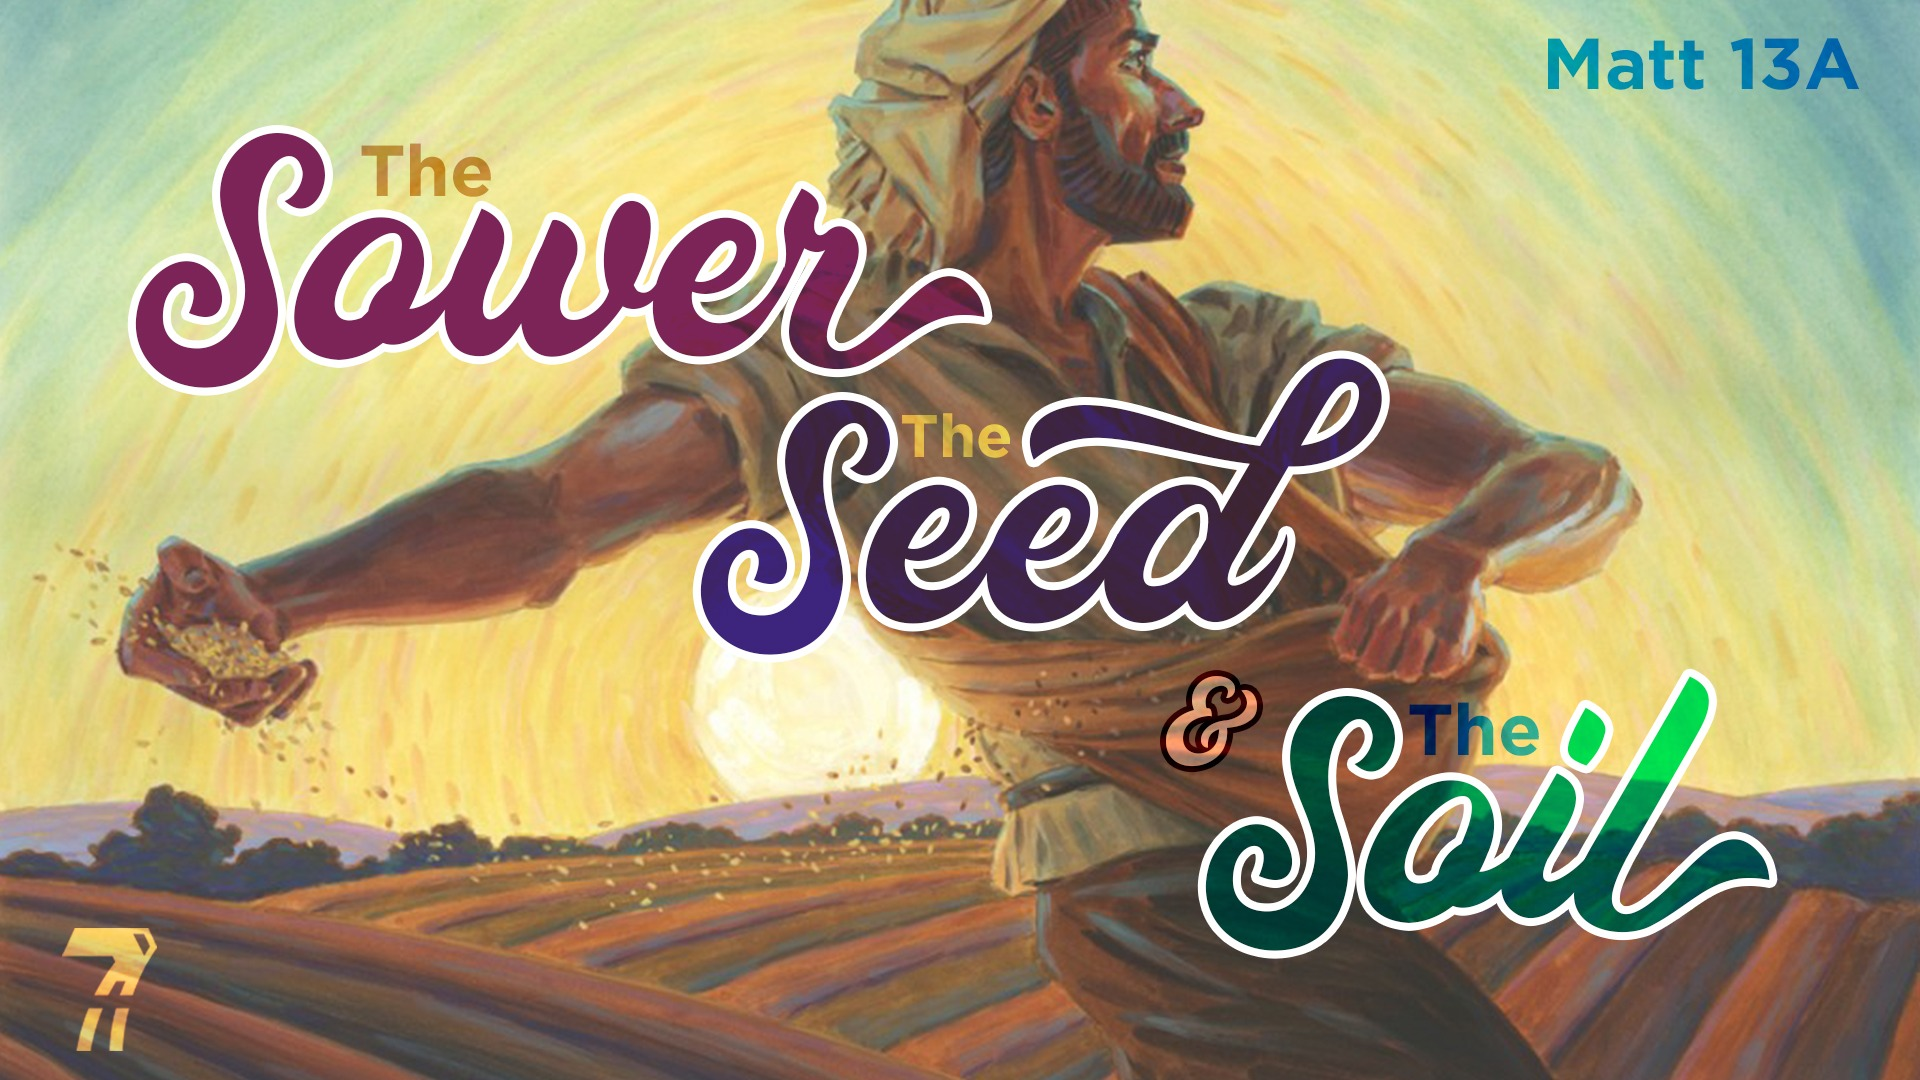 Matthew 13a – The Sower, the Seed & the Soil